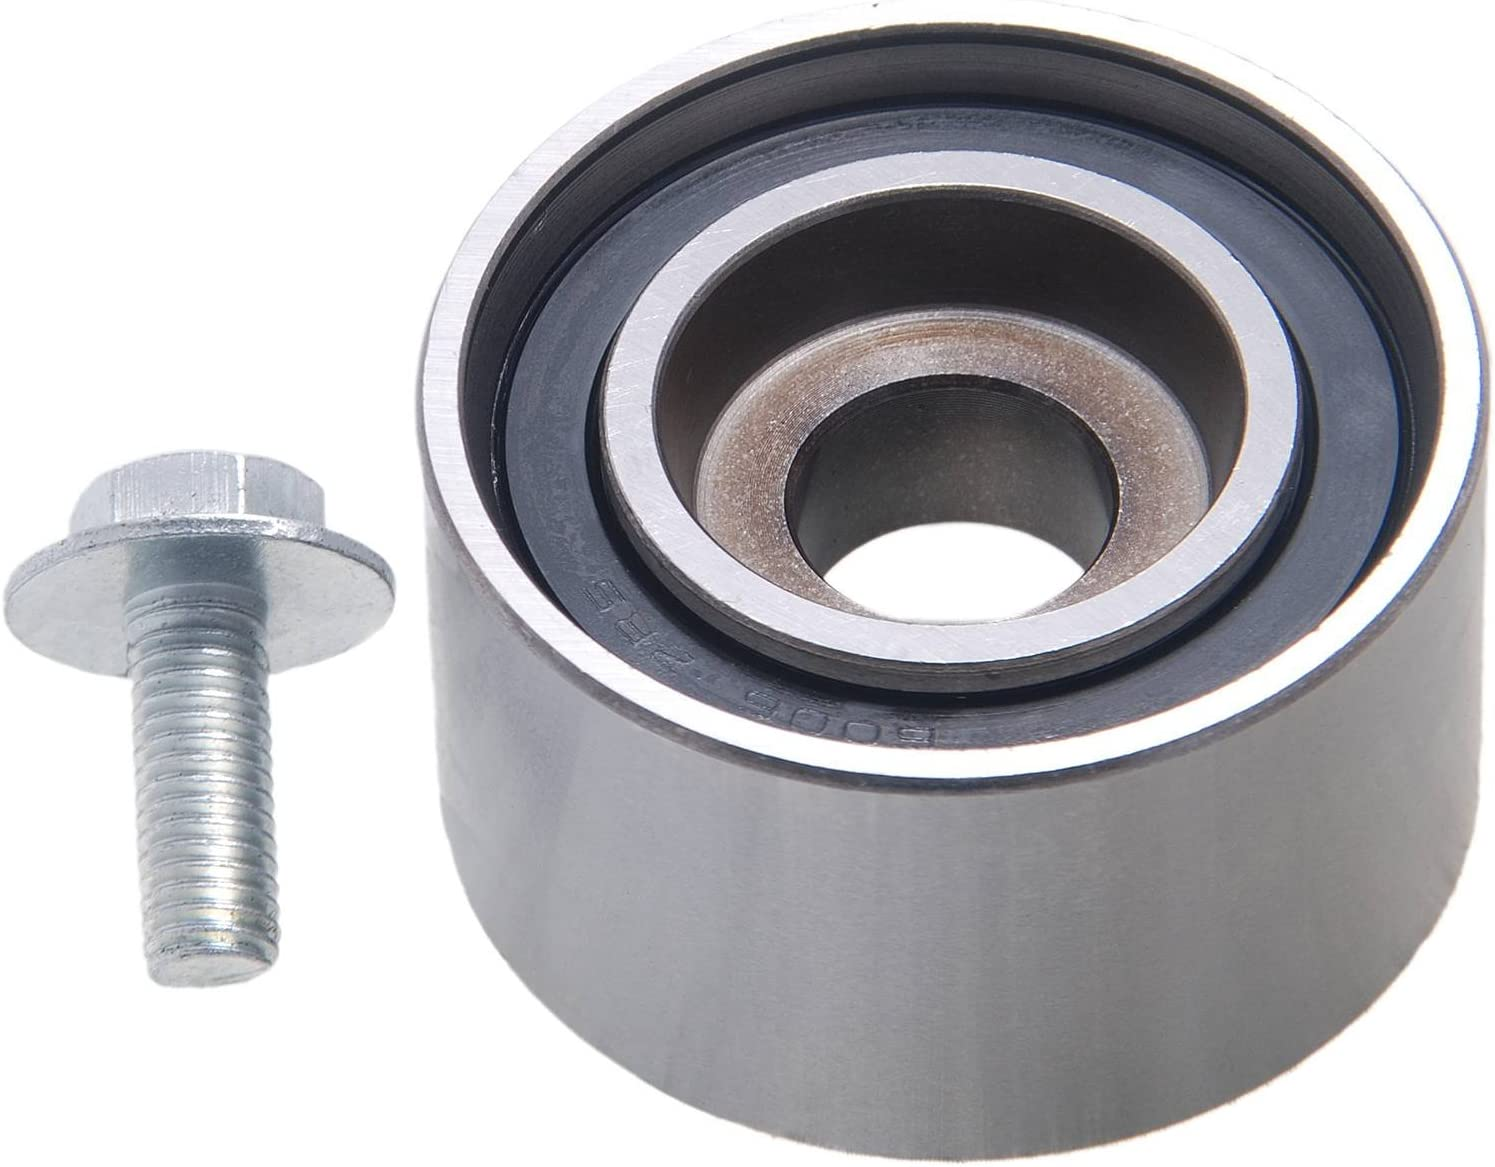 24410-27000 2441027000 - Pulley Factory outlet Idler Kia Deluxe For Hyundai